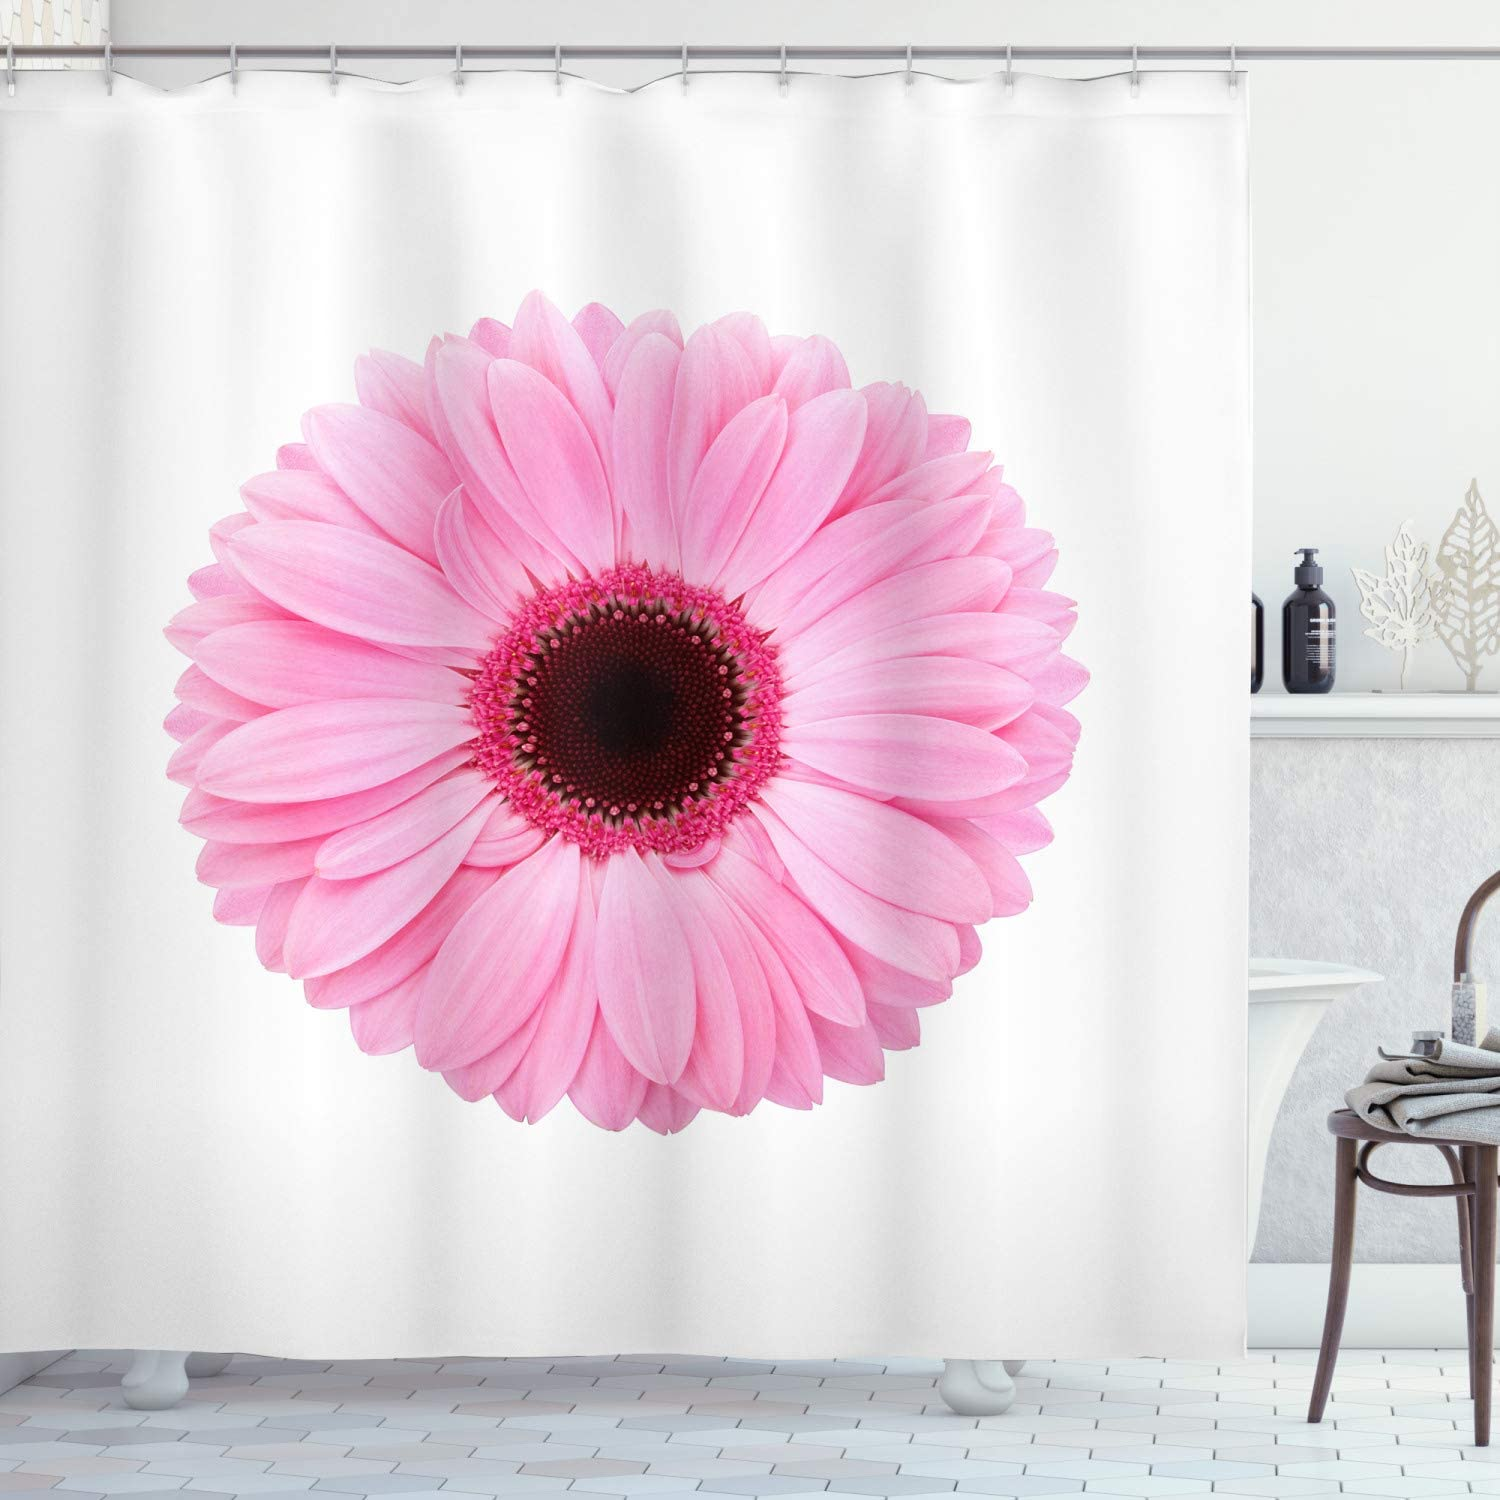 Ambesonne Pink And White Shower Curtain Fresh Gerber Daisy Garden Plants Of Spring Growth Single Flower Image Cloth Fabric Bathroom Decor Set With Hooks 70 Long Pale Pink Home Kitchen